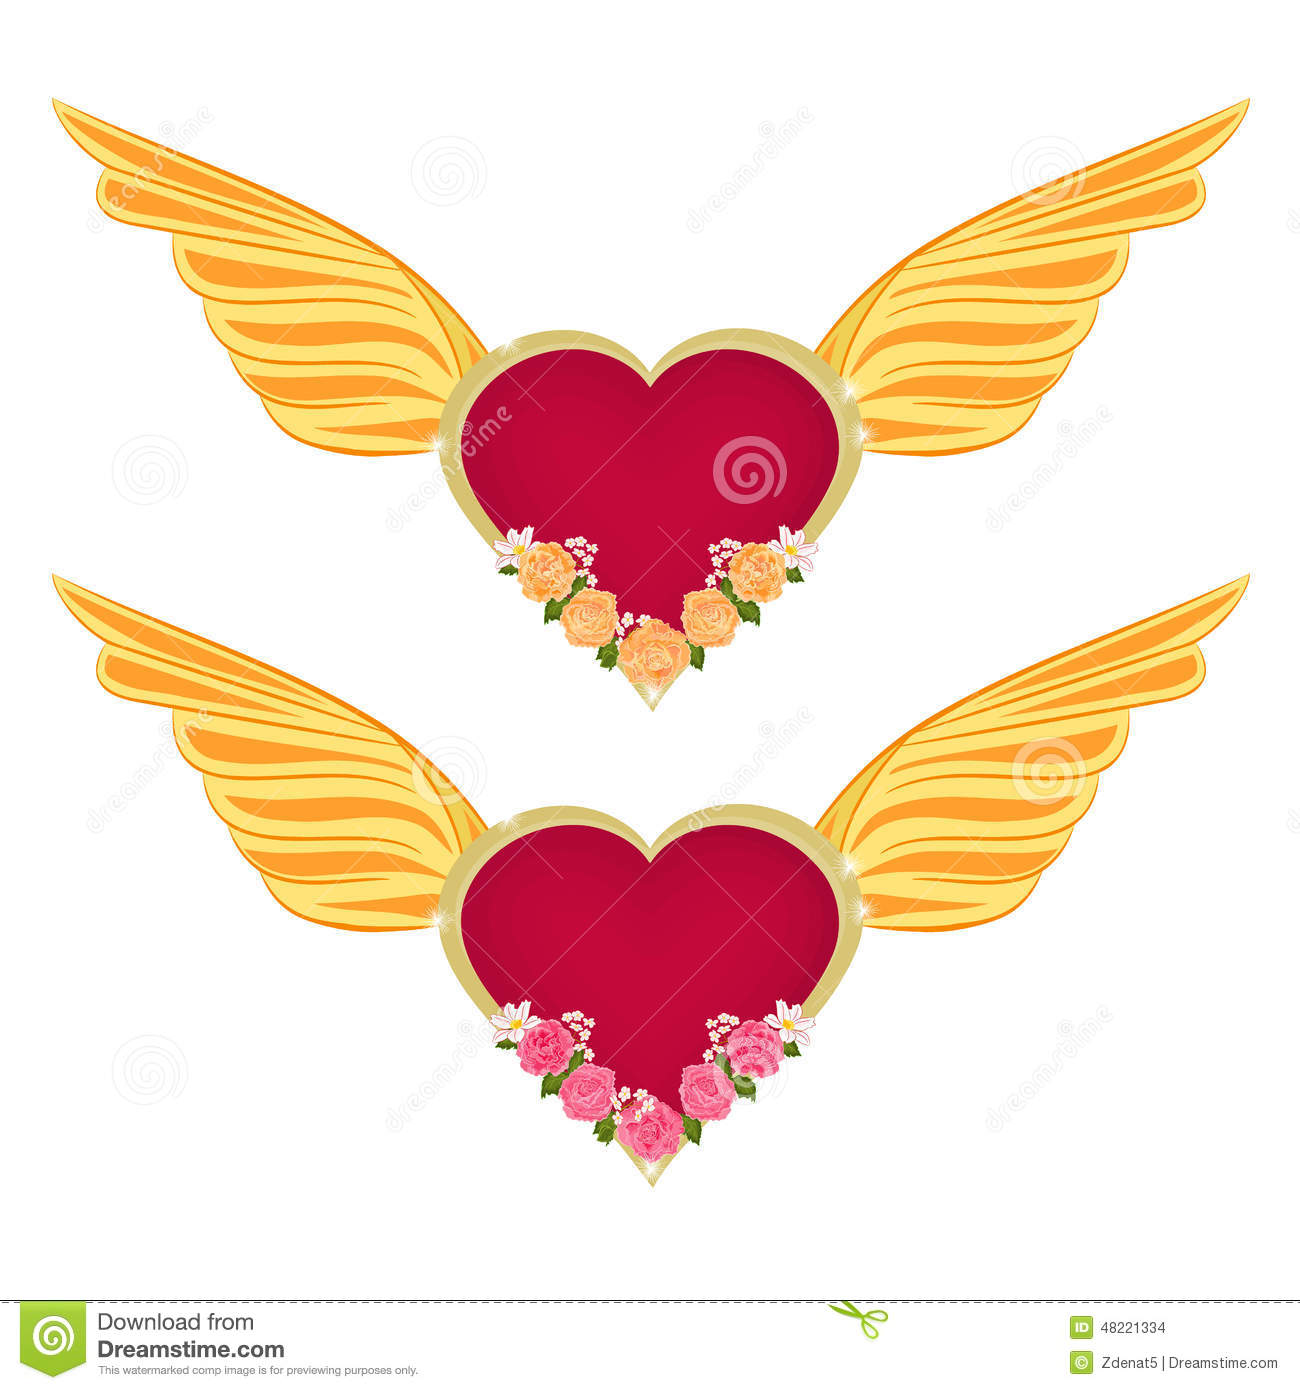 Hearts with wings and roses clipart banner free library Heart With Wings And Roses Vector Stock Vector - Image: 48221334 banner free library